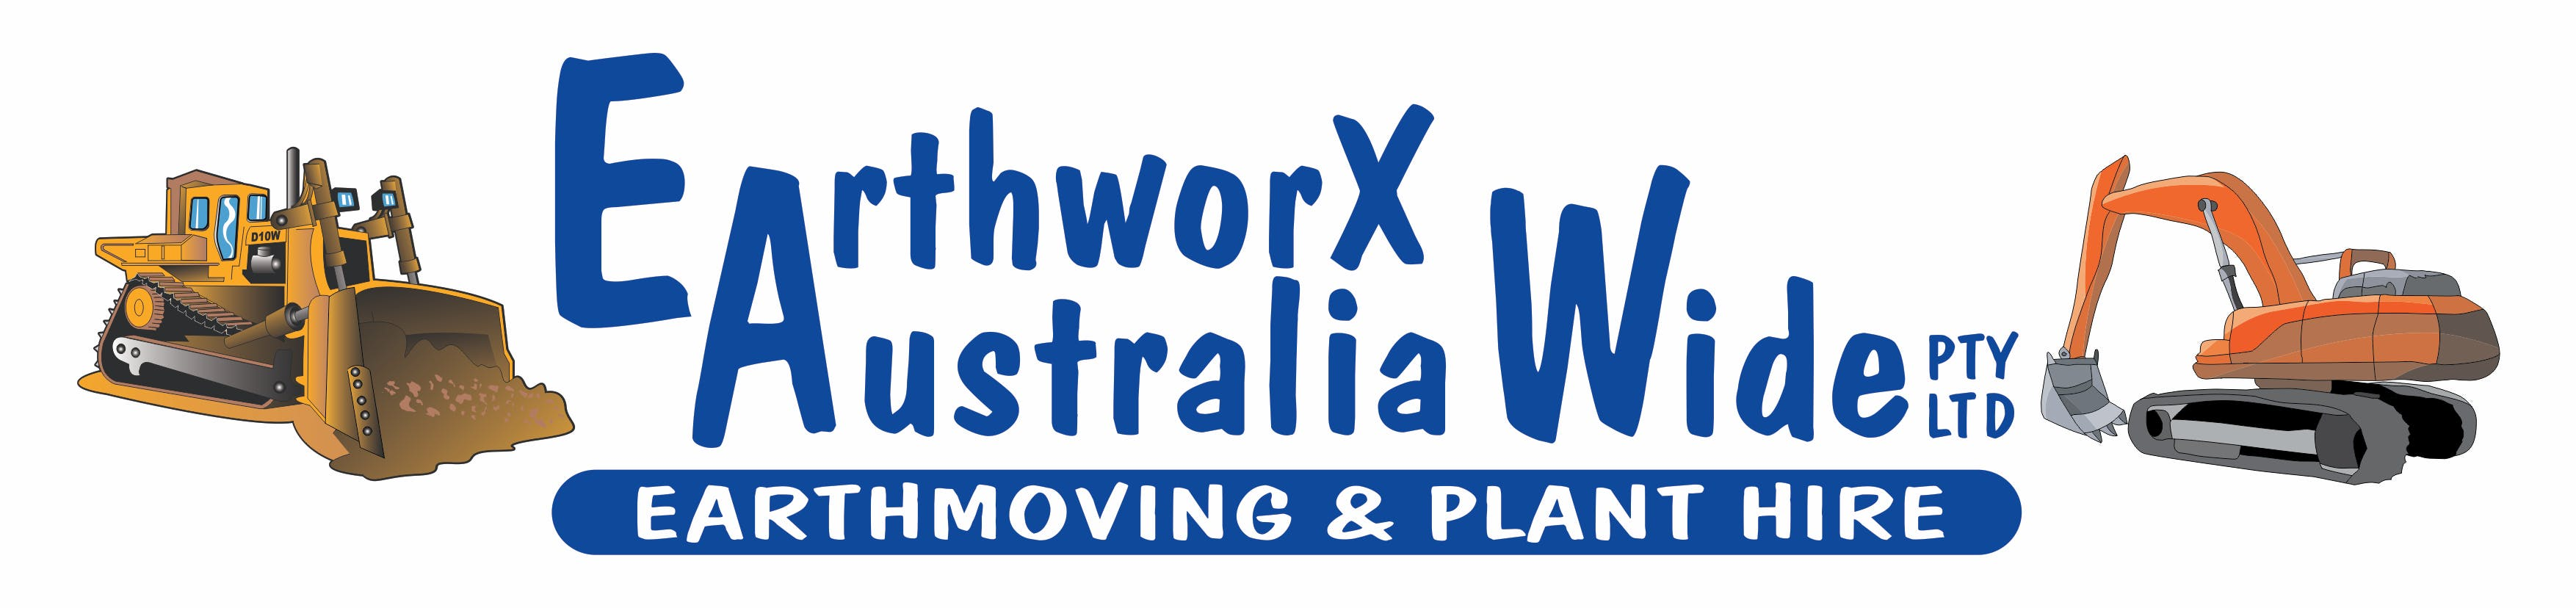 Earthworx Australia Wide